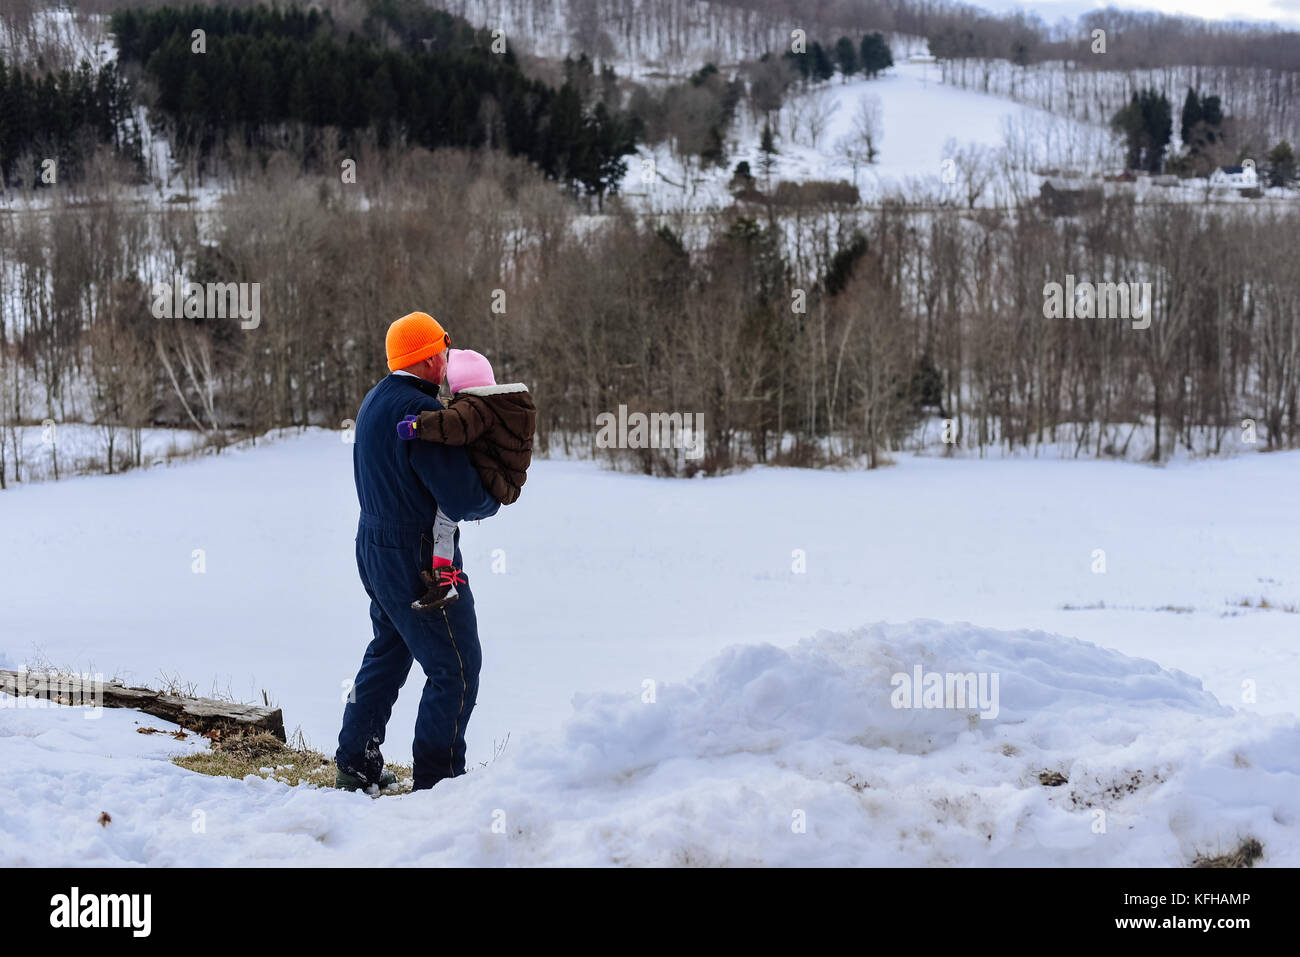 Man holding infant in winter with snow - Stock Image